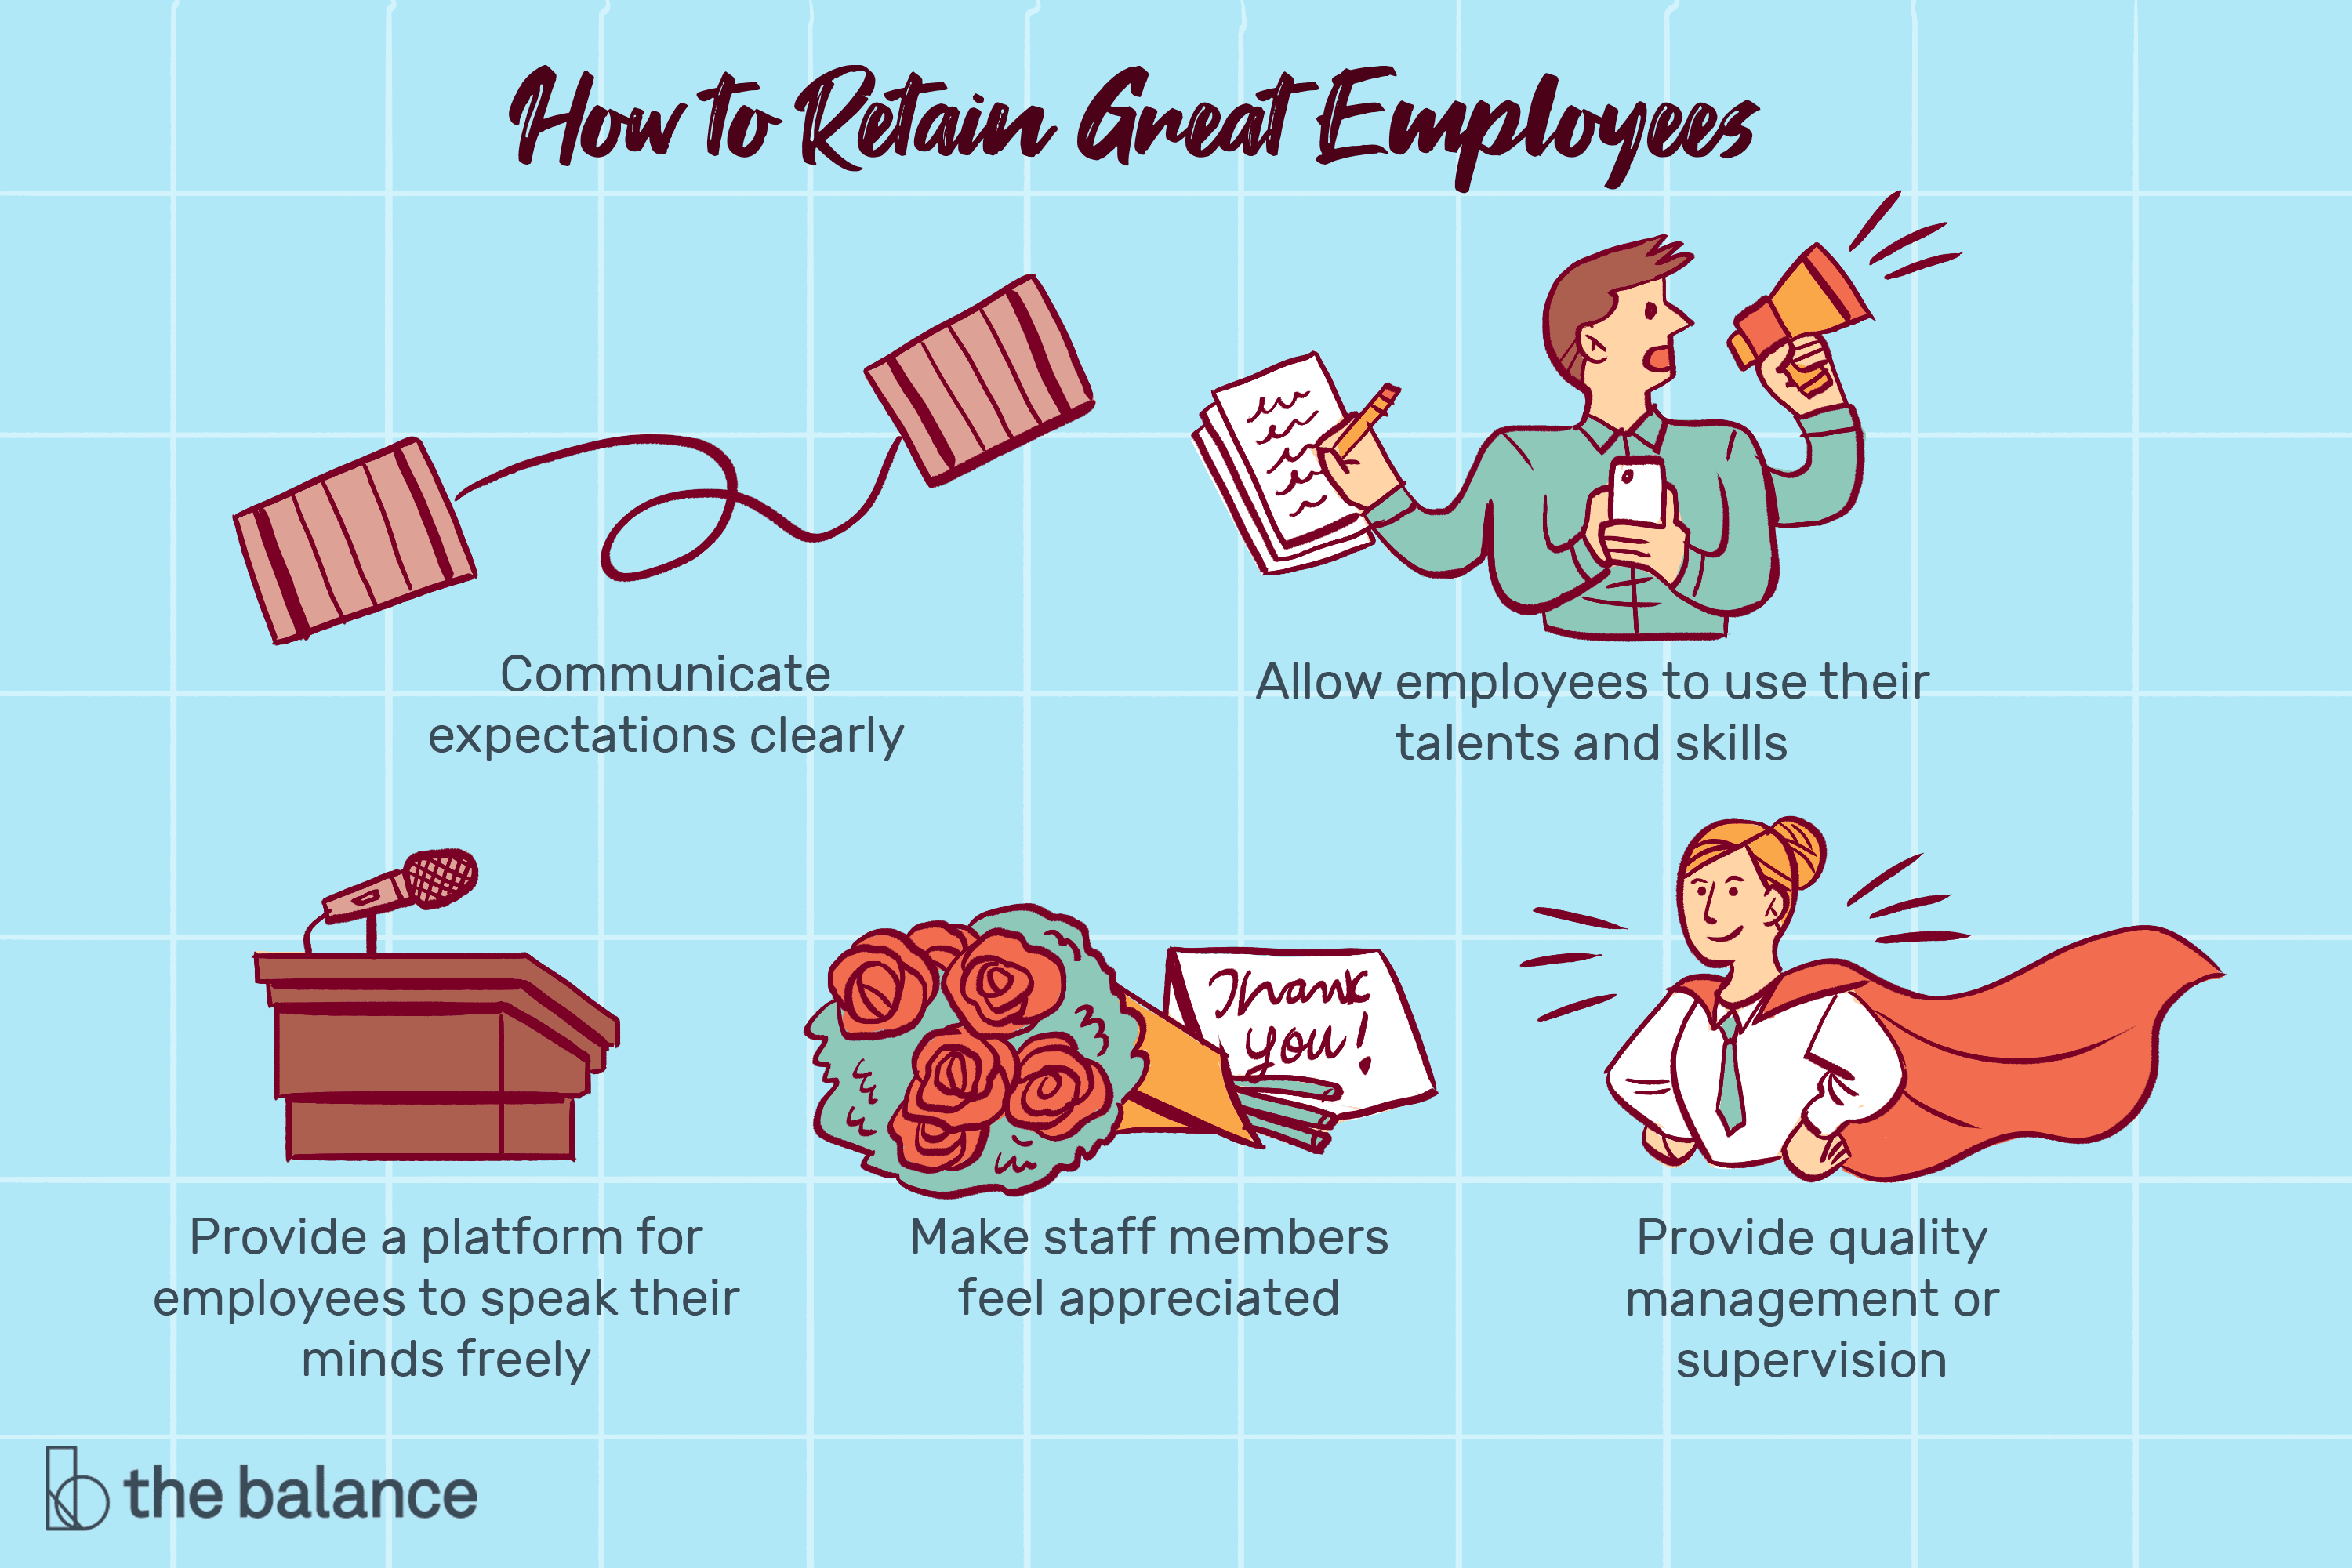 10 best ways to retain great employees